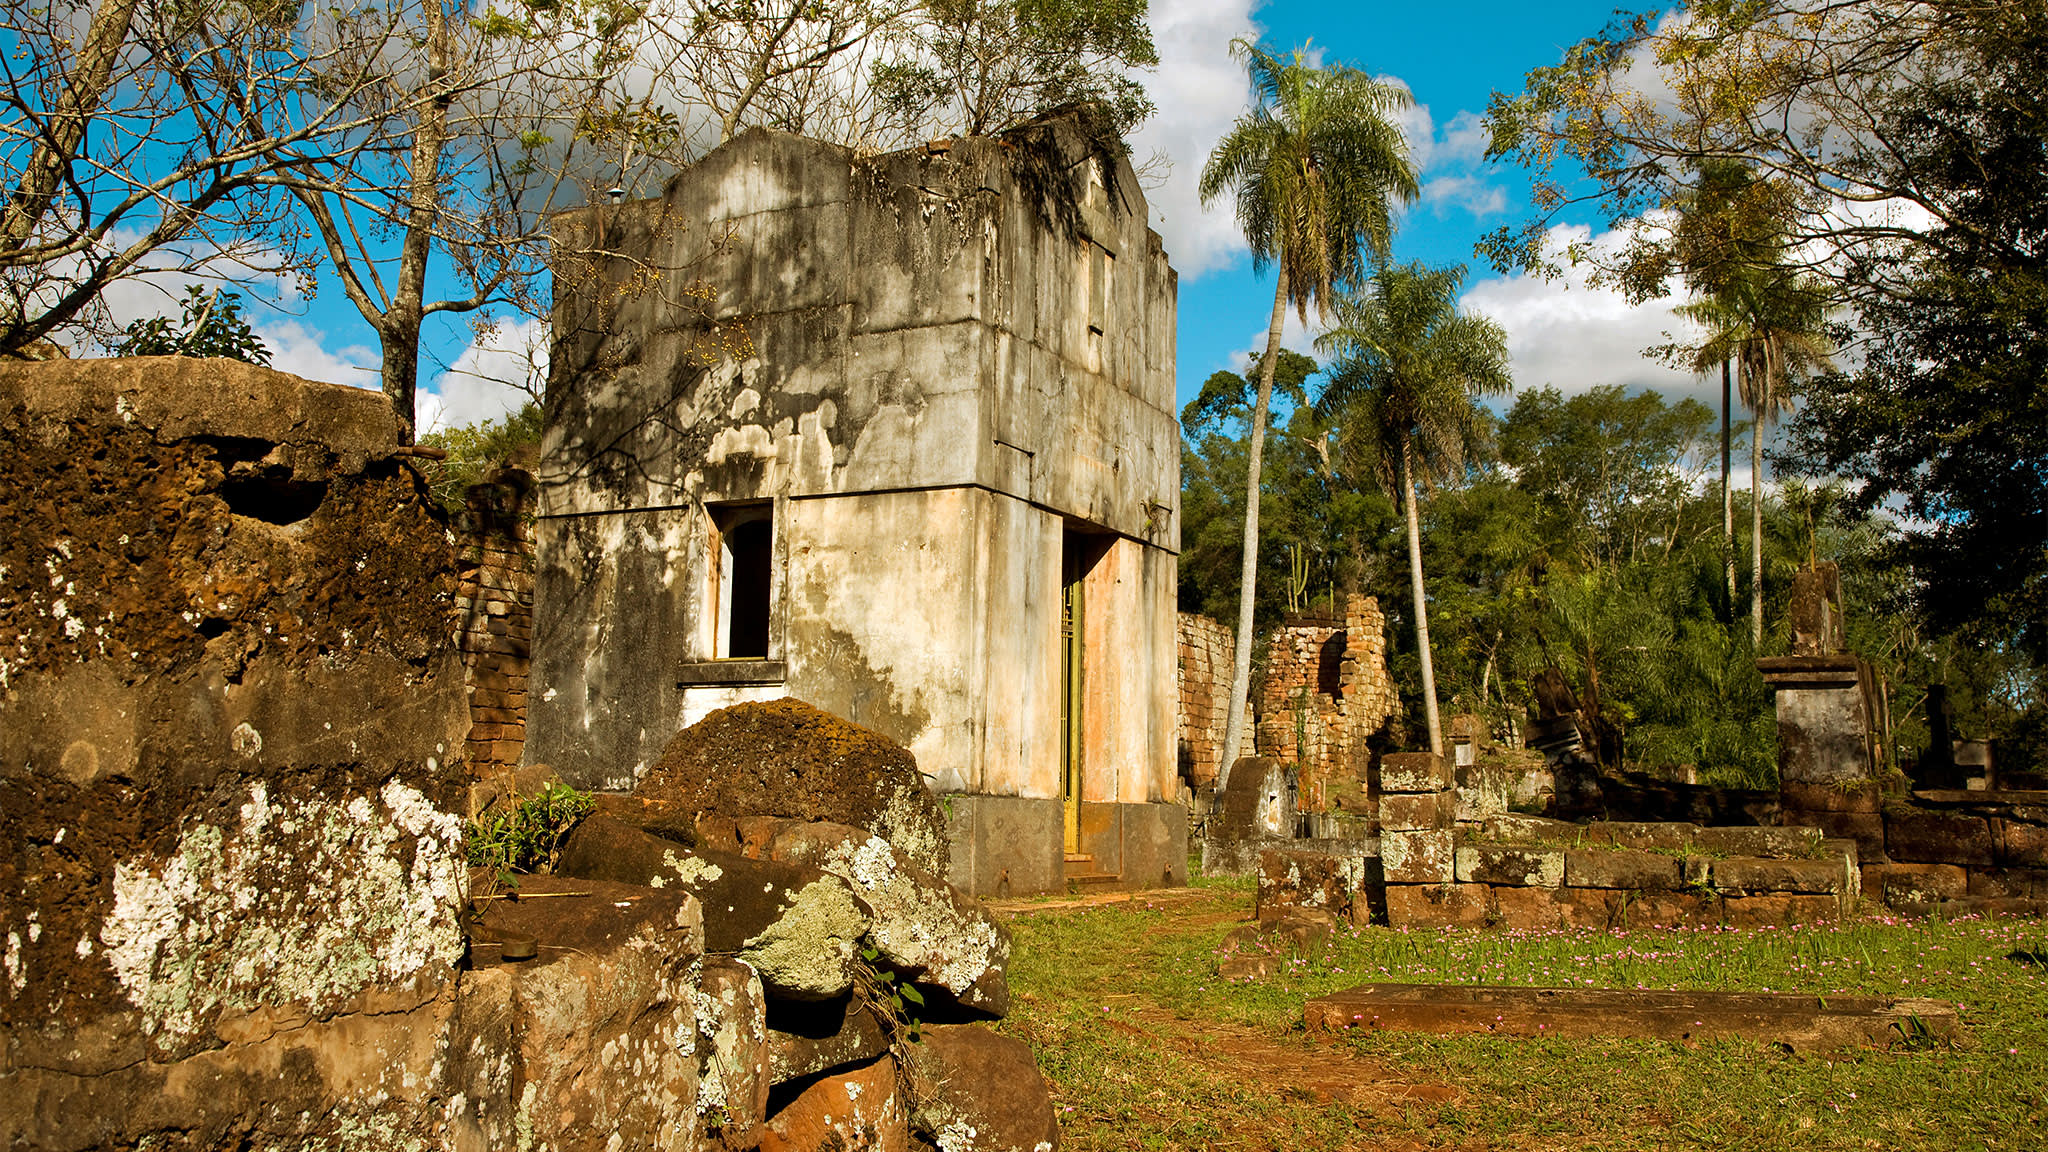 Forgotten Jesuit sanctuaries in the jungles of Argentina | Financial Times